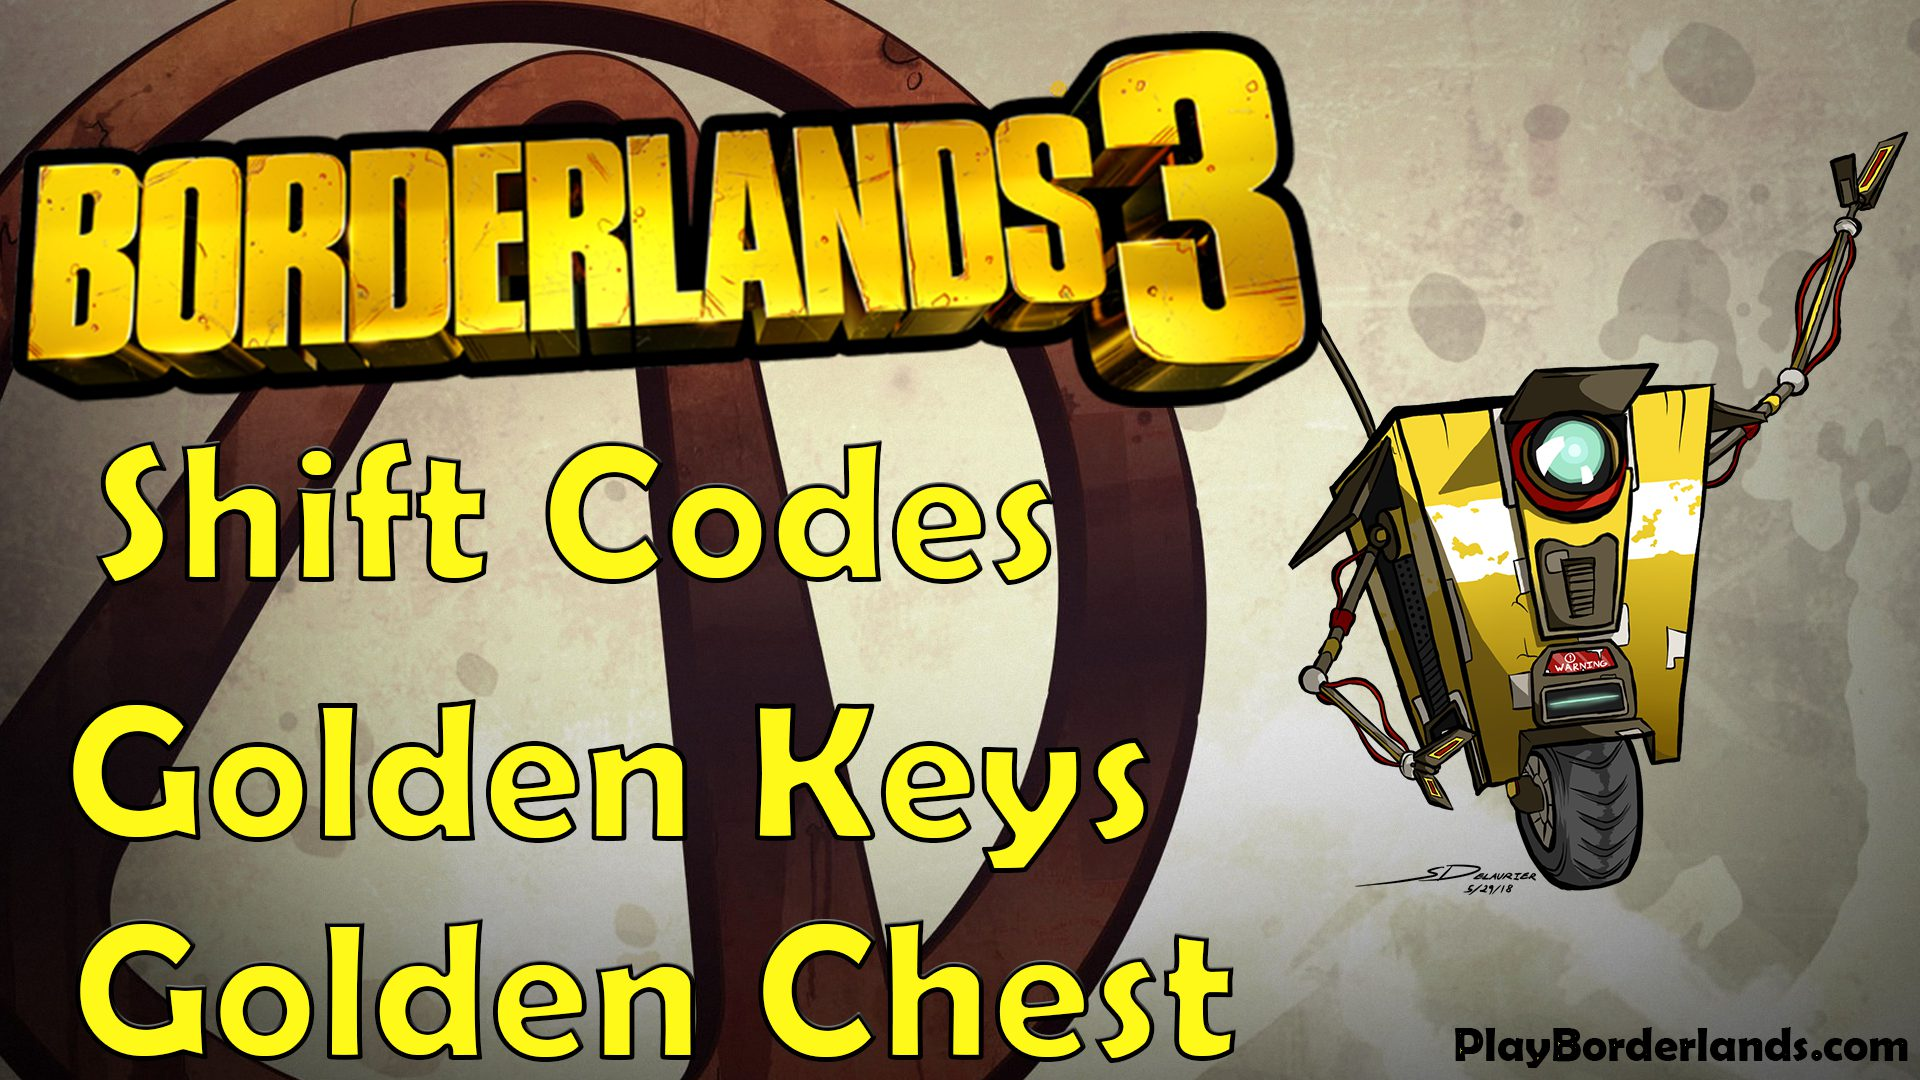 Borderlands 3 Shift codes golden keys golden chest